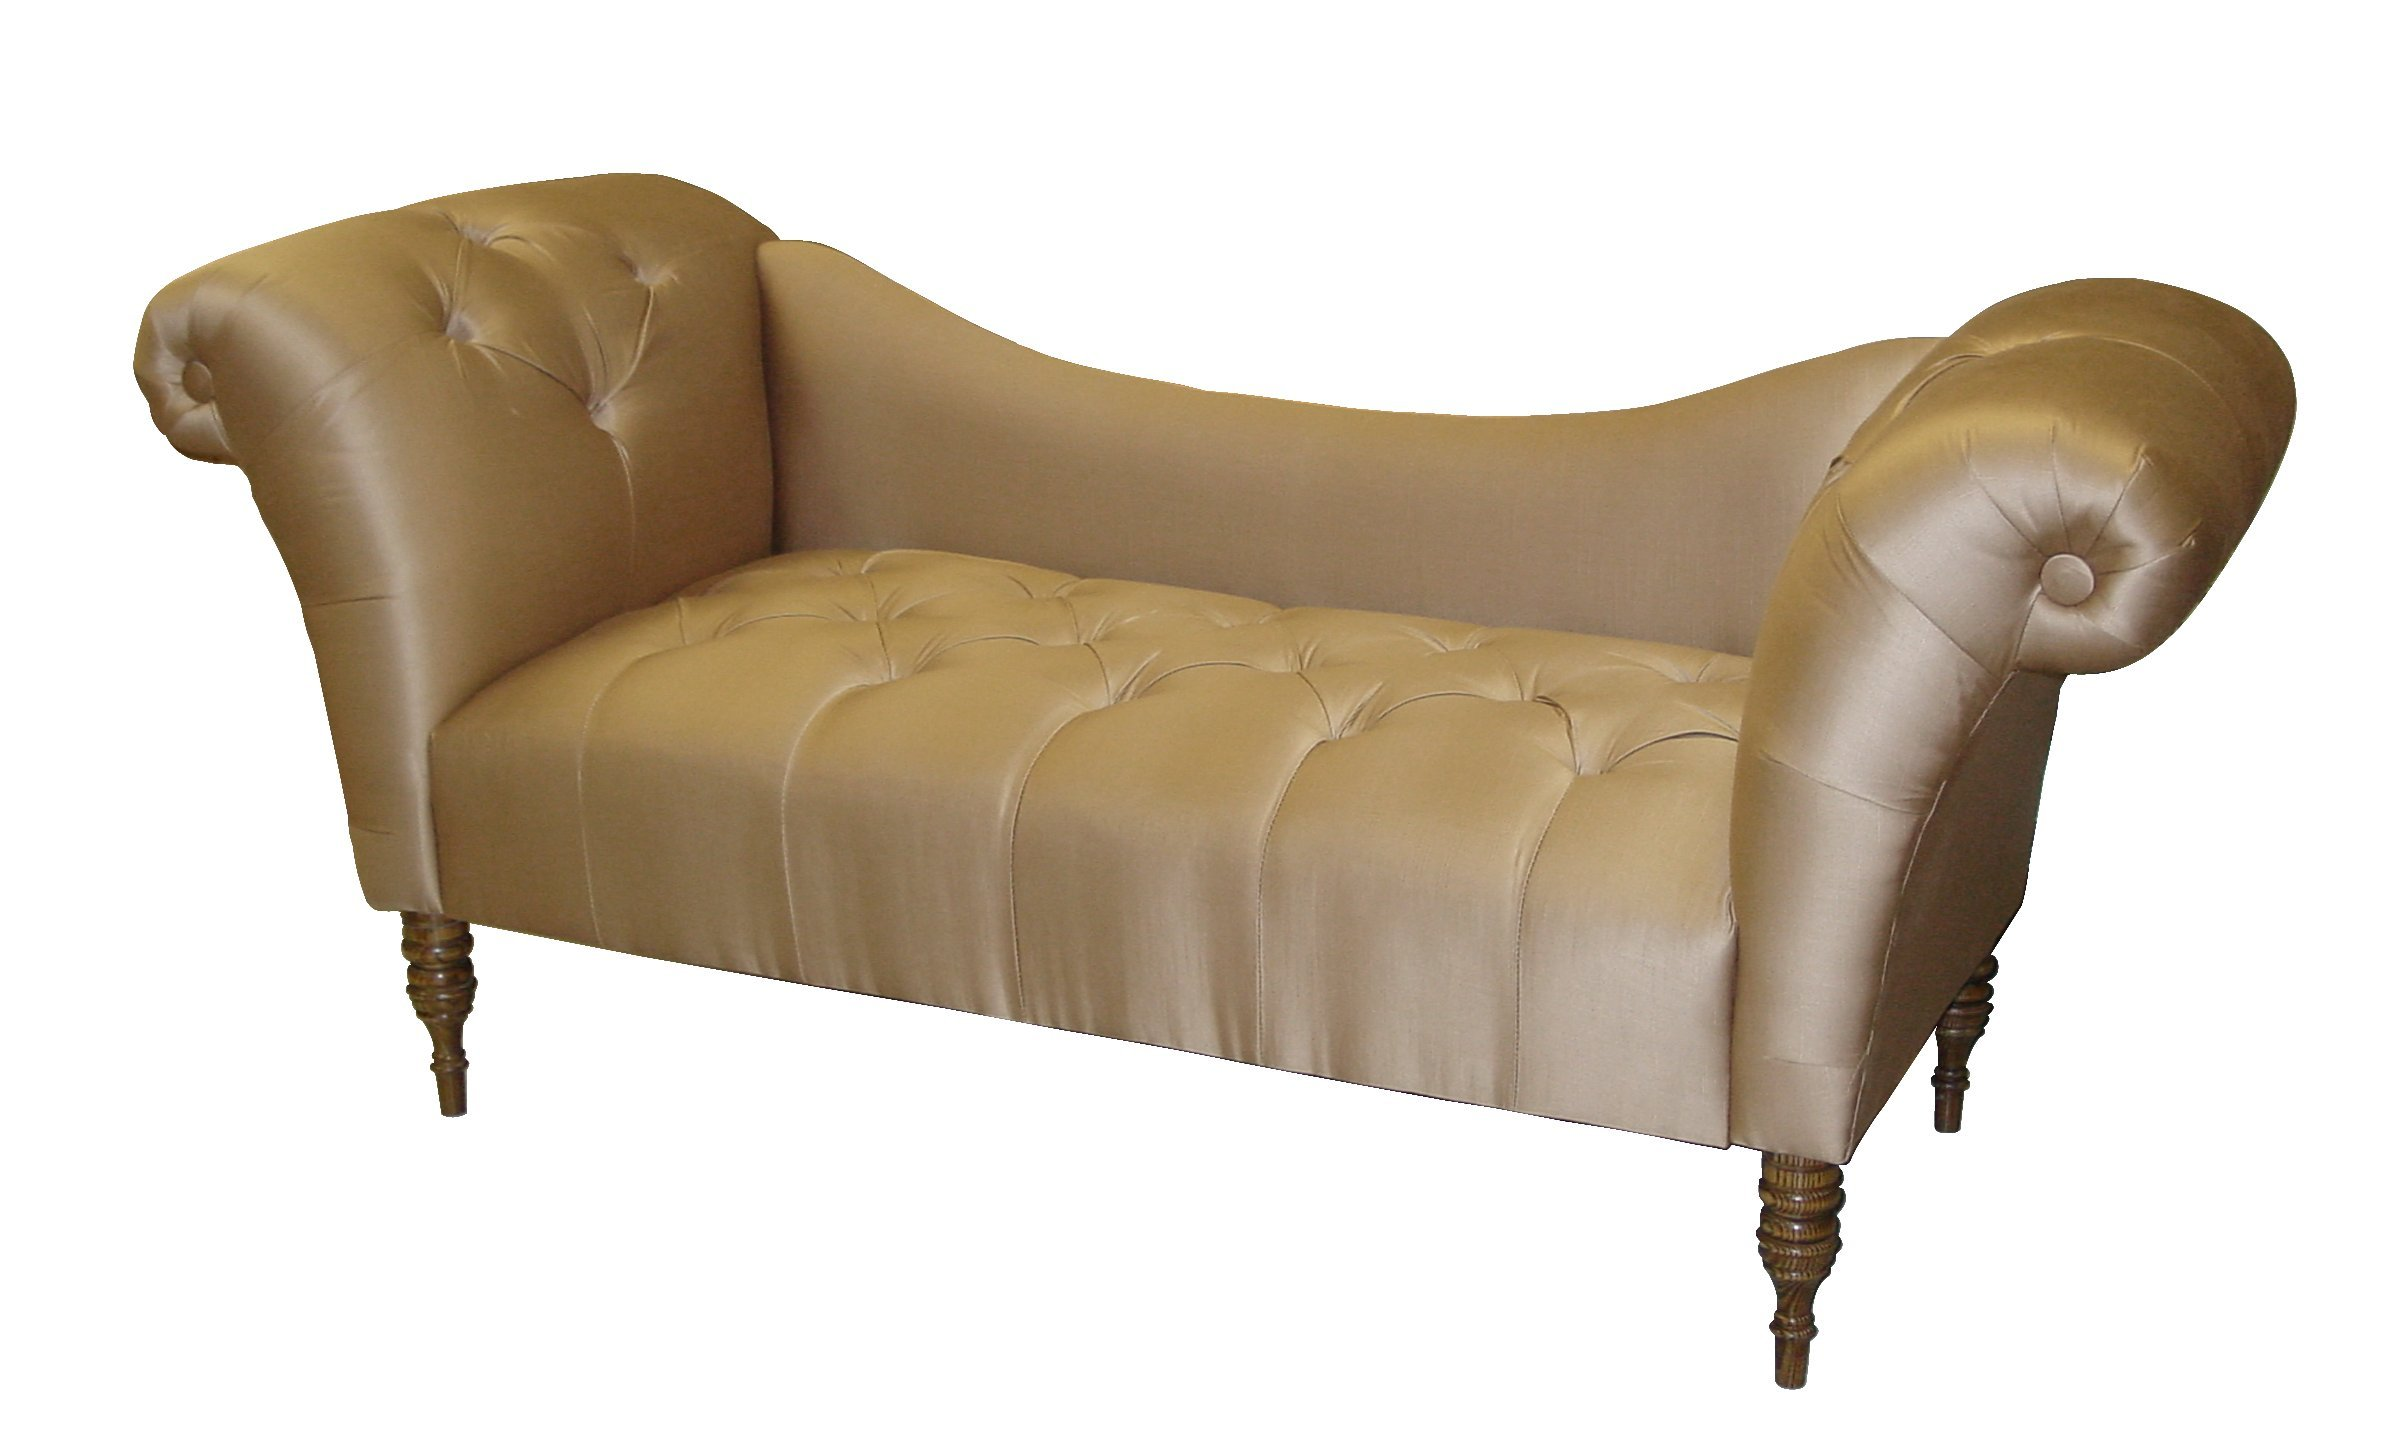 Double chaise lounge indoor furniture - Antique Style Double Arm Upholstered Bench Check Price